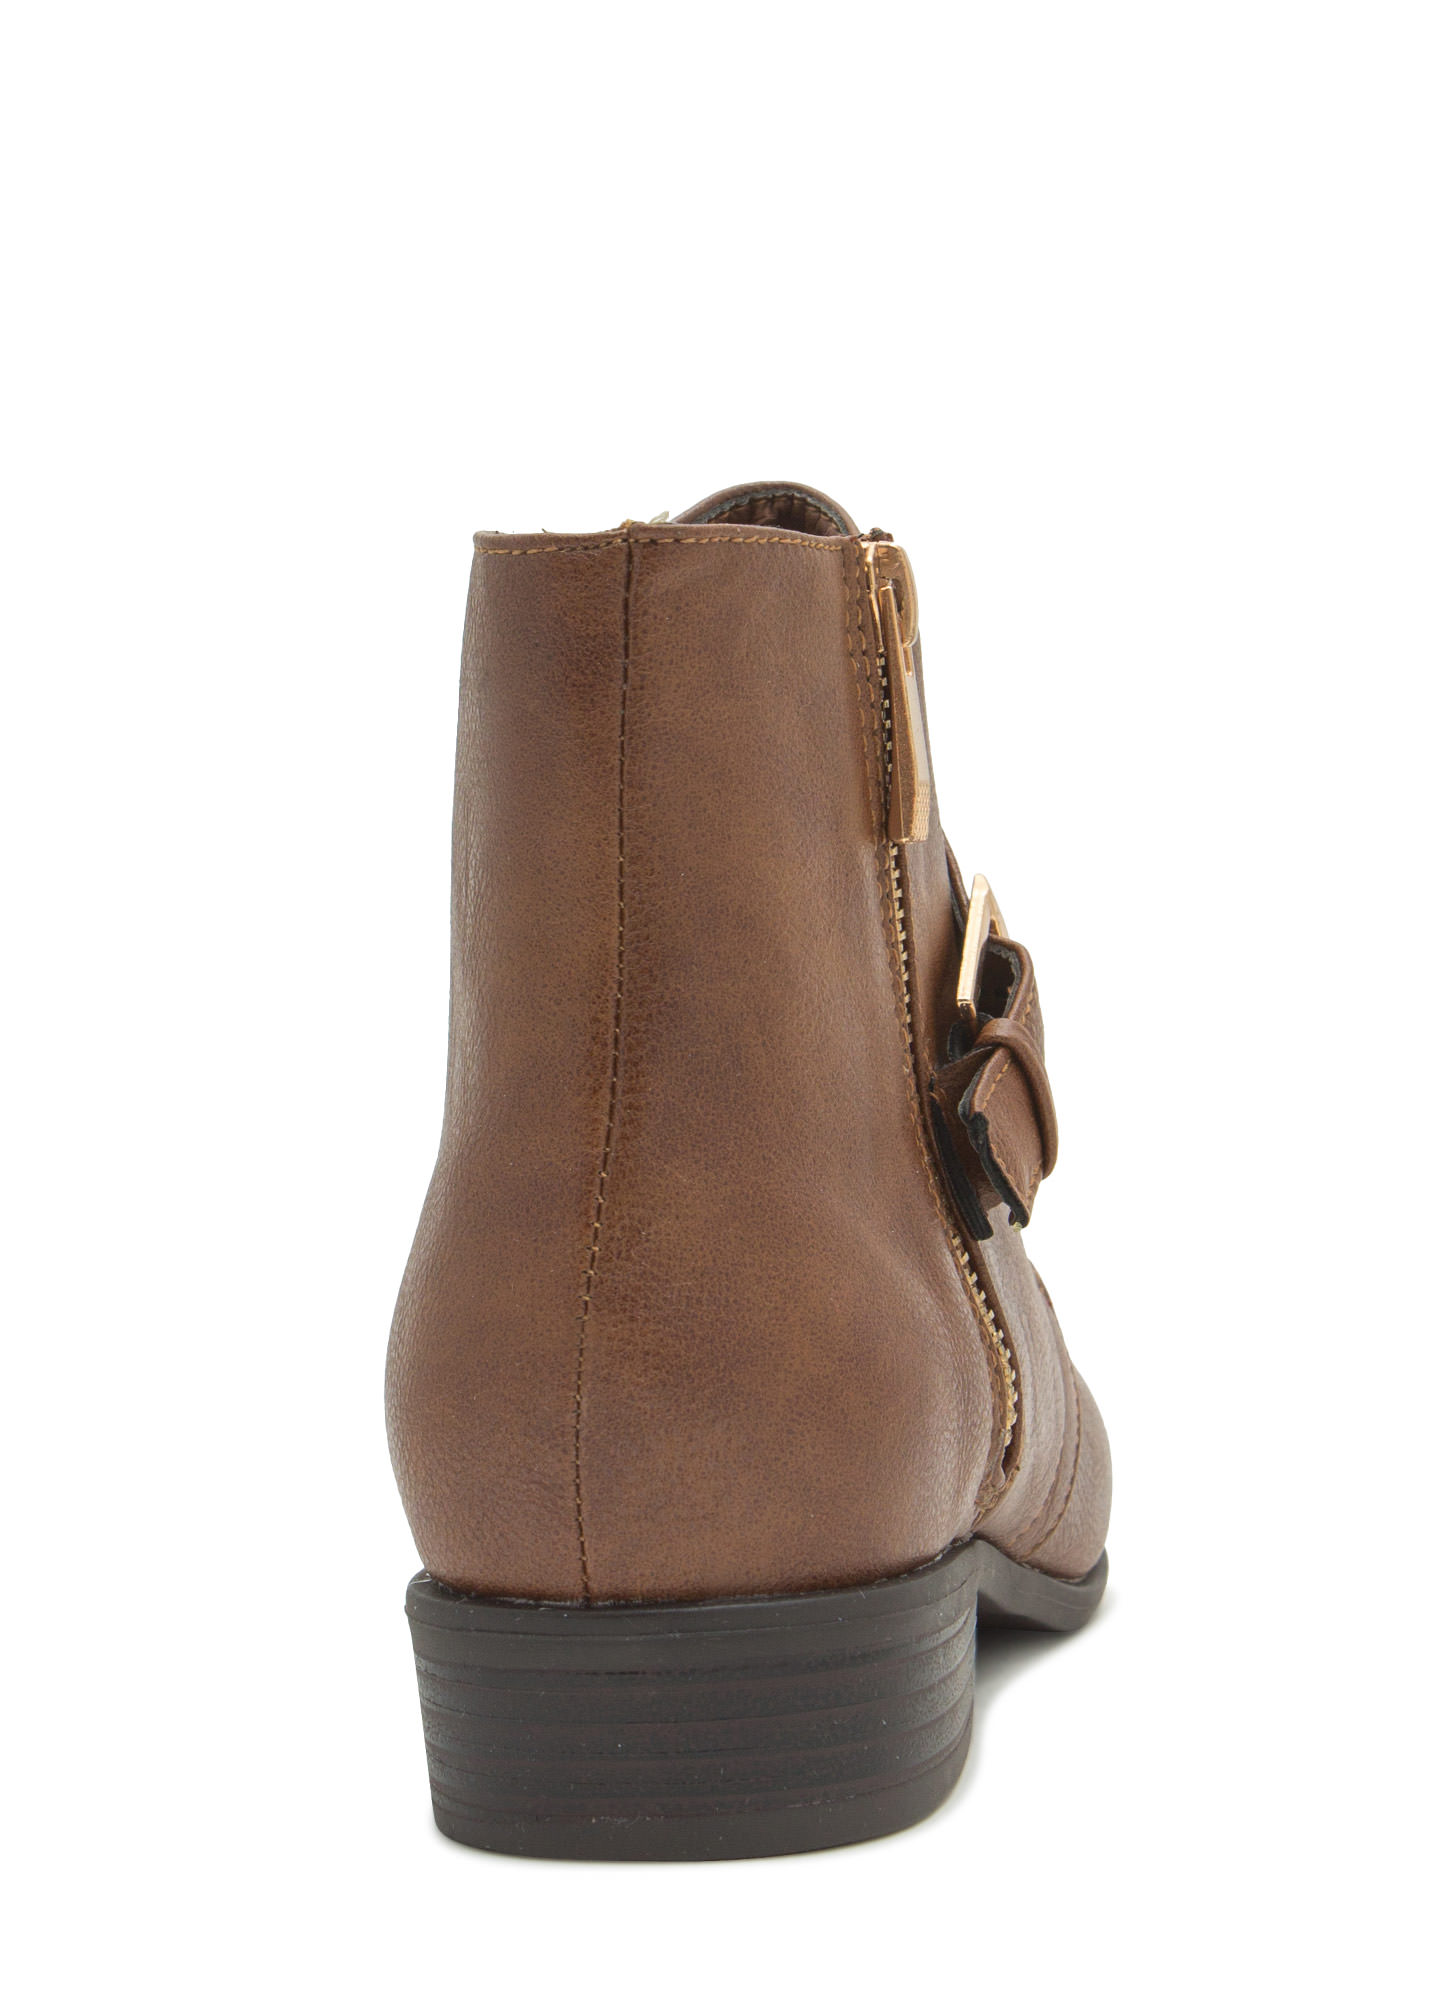 Tough 'N Chic Faux Leather Booties CHESTNUT